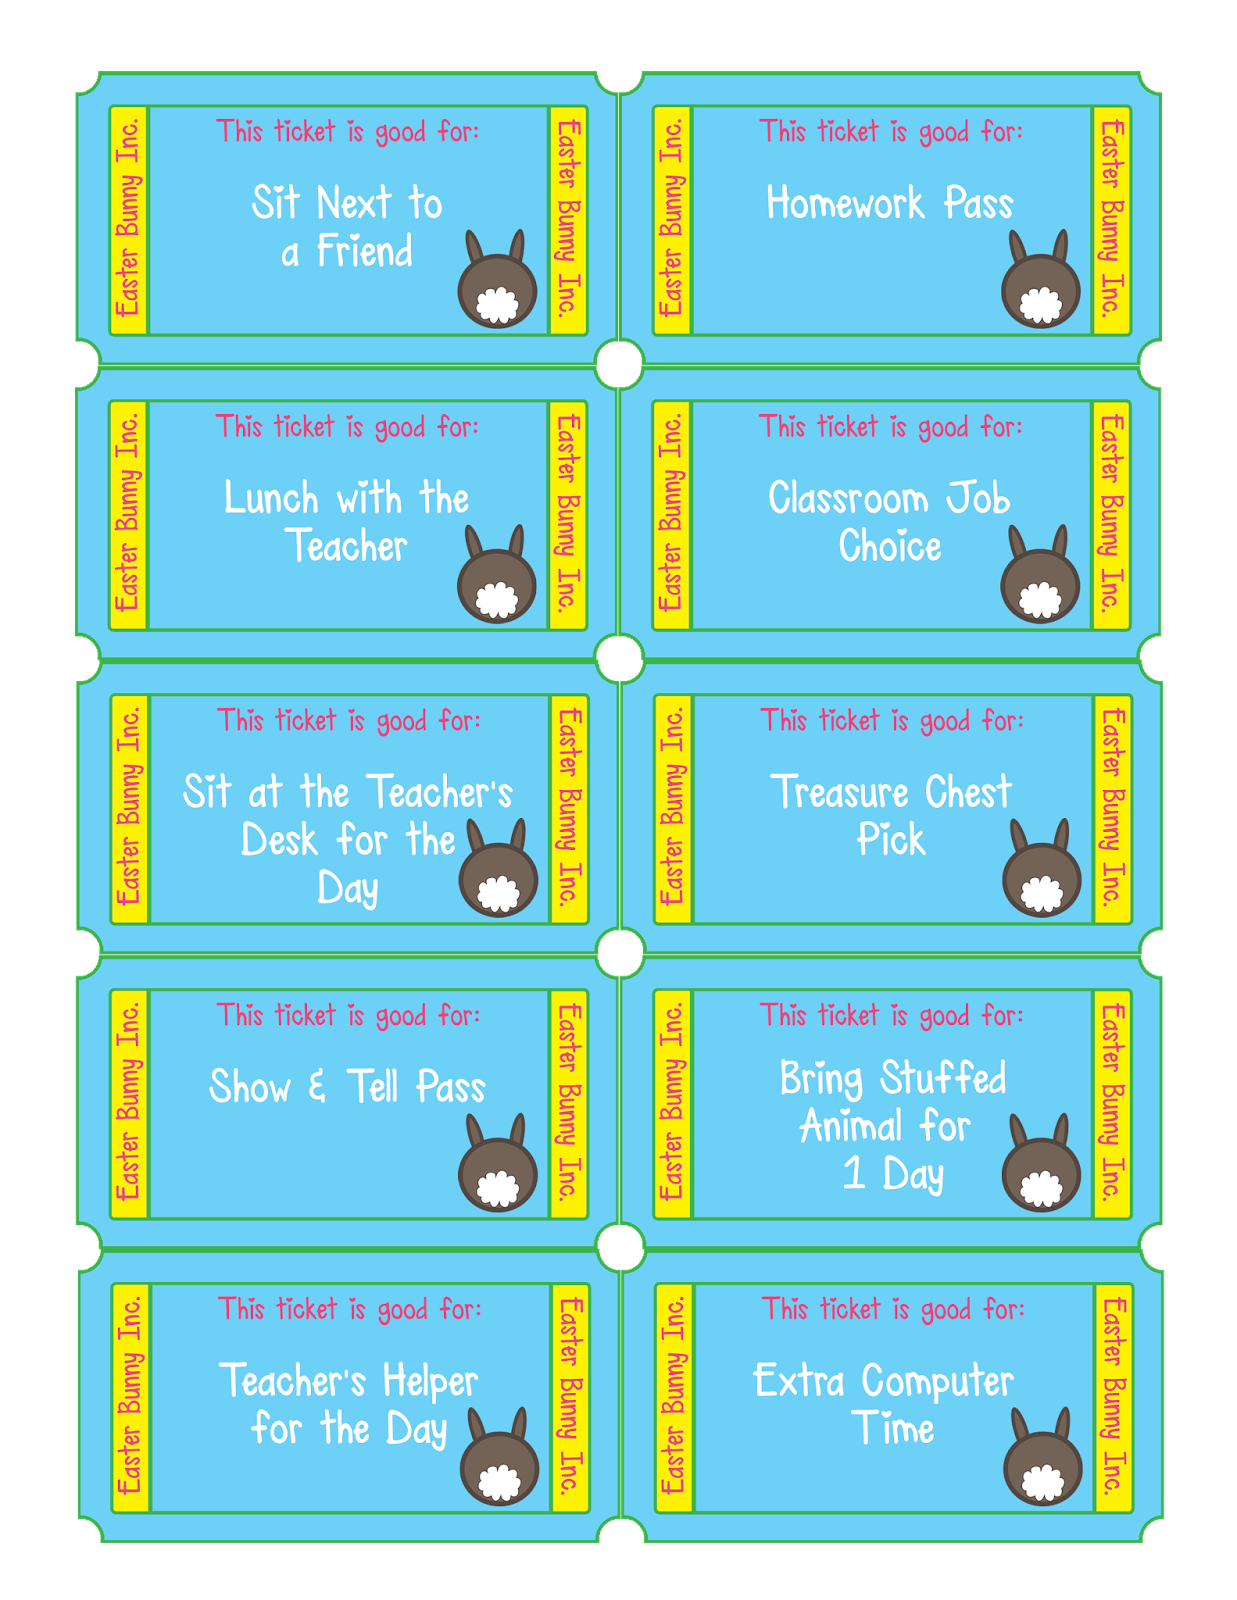 Free Printable Easter Egg Tickets. The Perfect Alternative To Candy For  Easter Egg Hunts.  How To Make Tickets For An Event Free